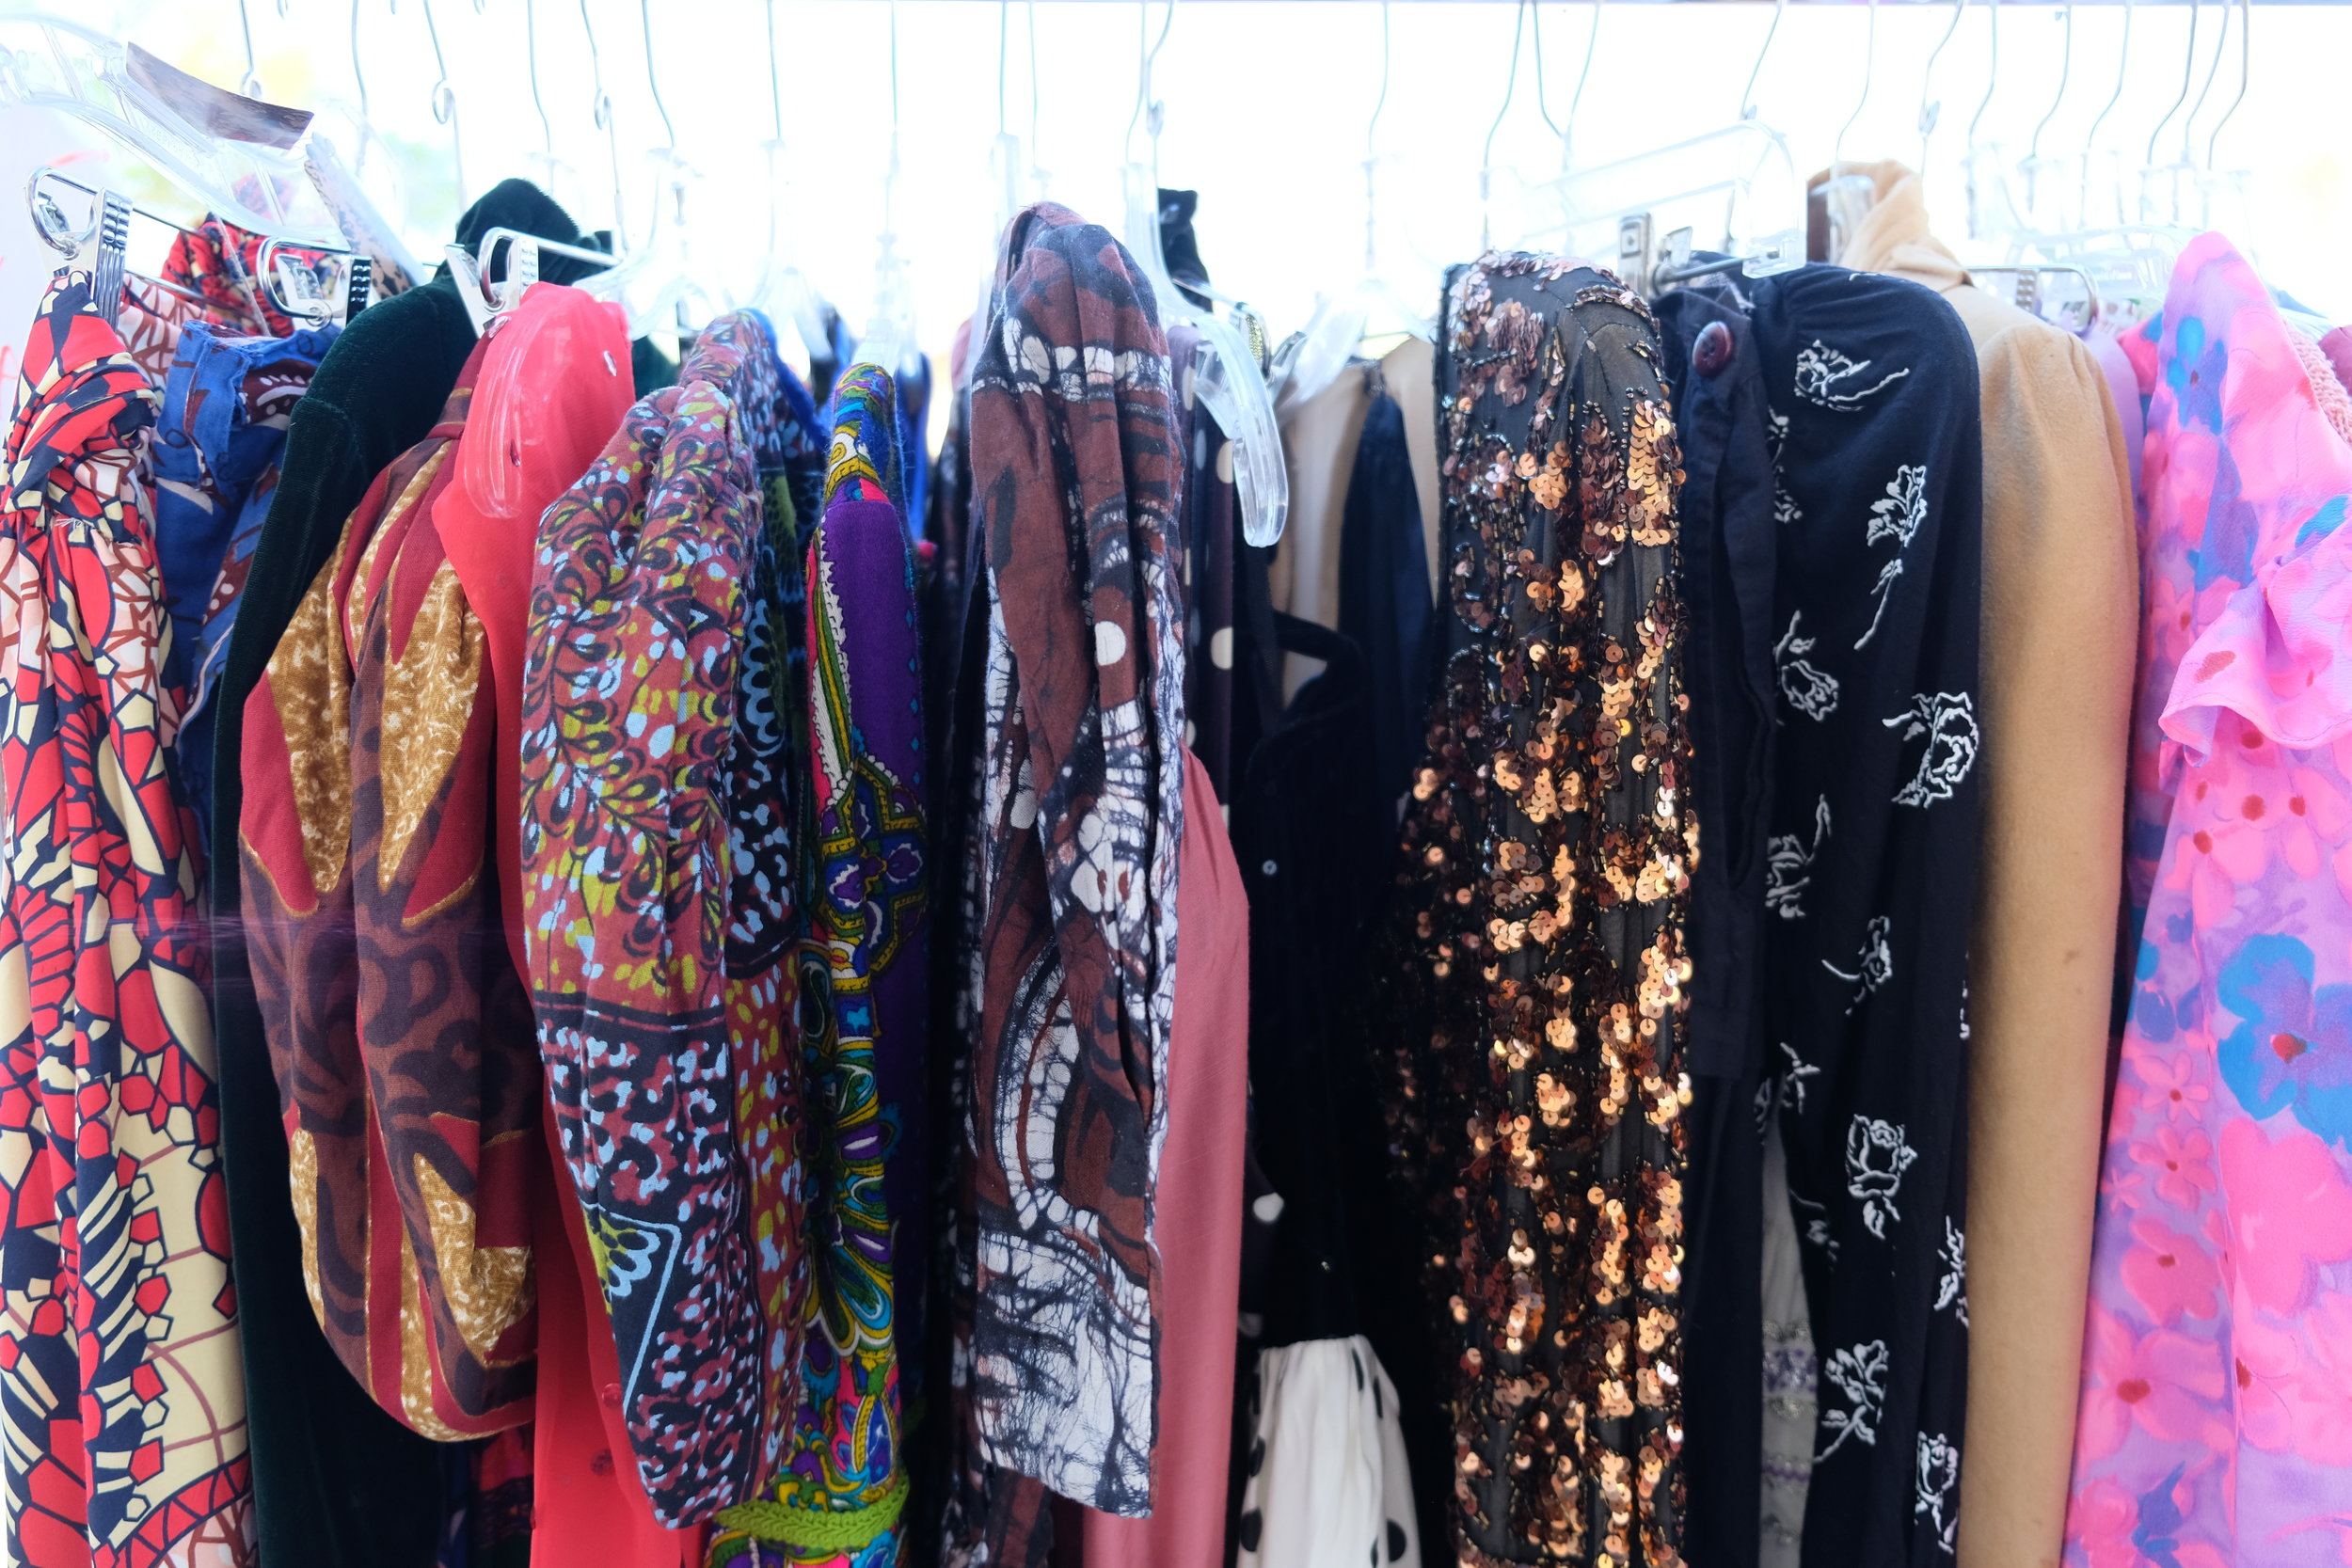 Greer Image Consulting - Blog - Greer Image Consulting Interviews The Owner of Austin Vintage Shop Coco Coquette